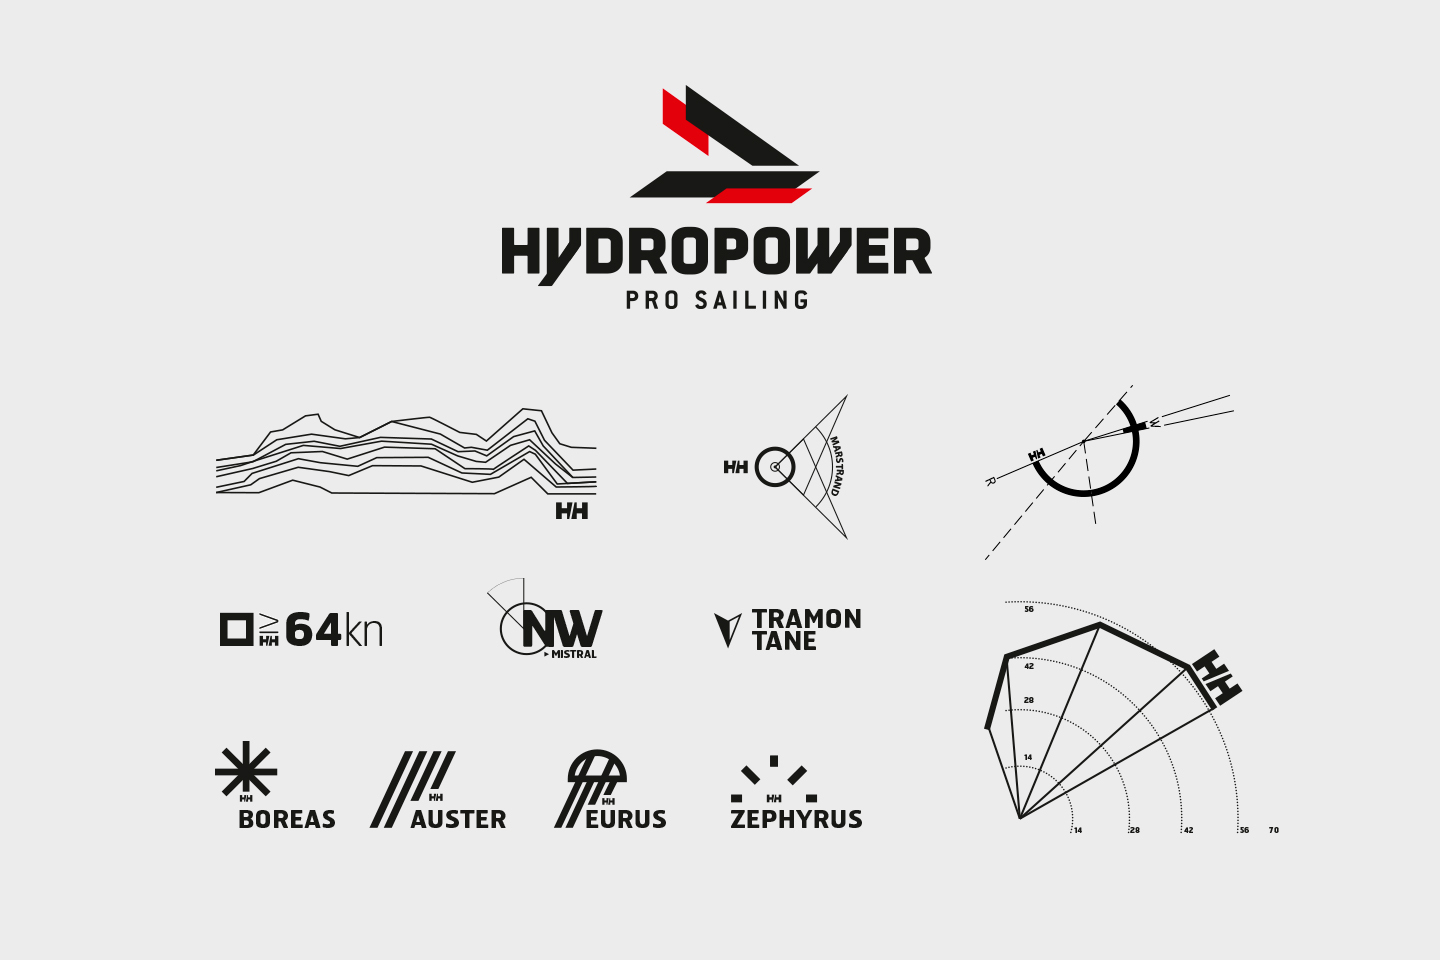 Helly Hansen hydropower pro sailing, graphics. Tramon tane, boreas, auster, eurus, zephyrus.